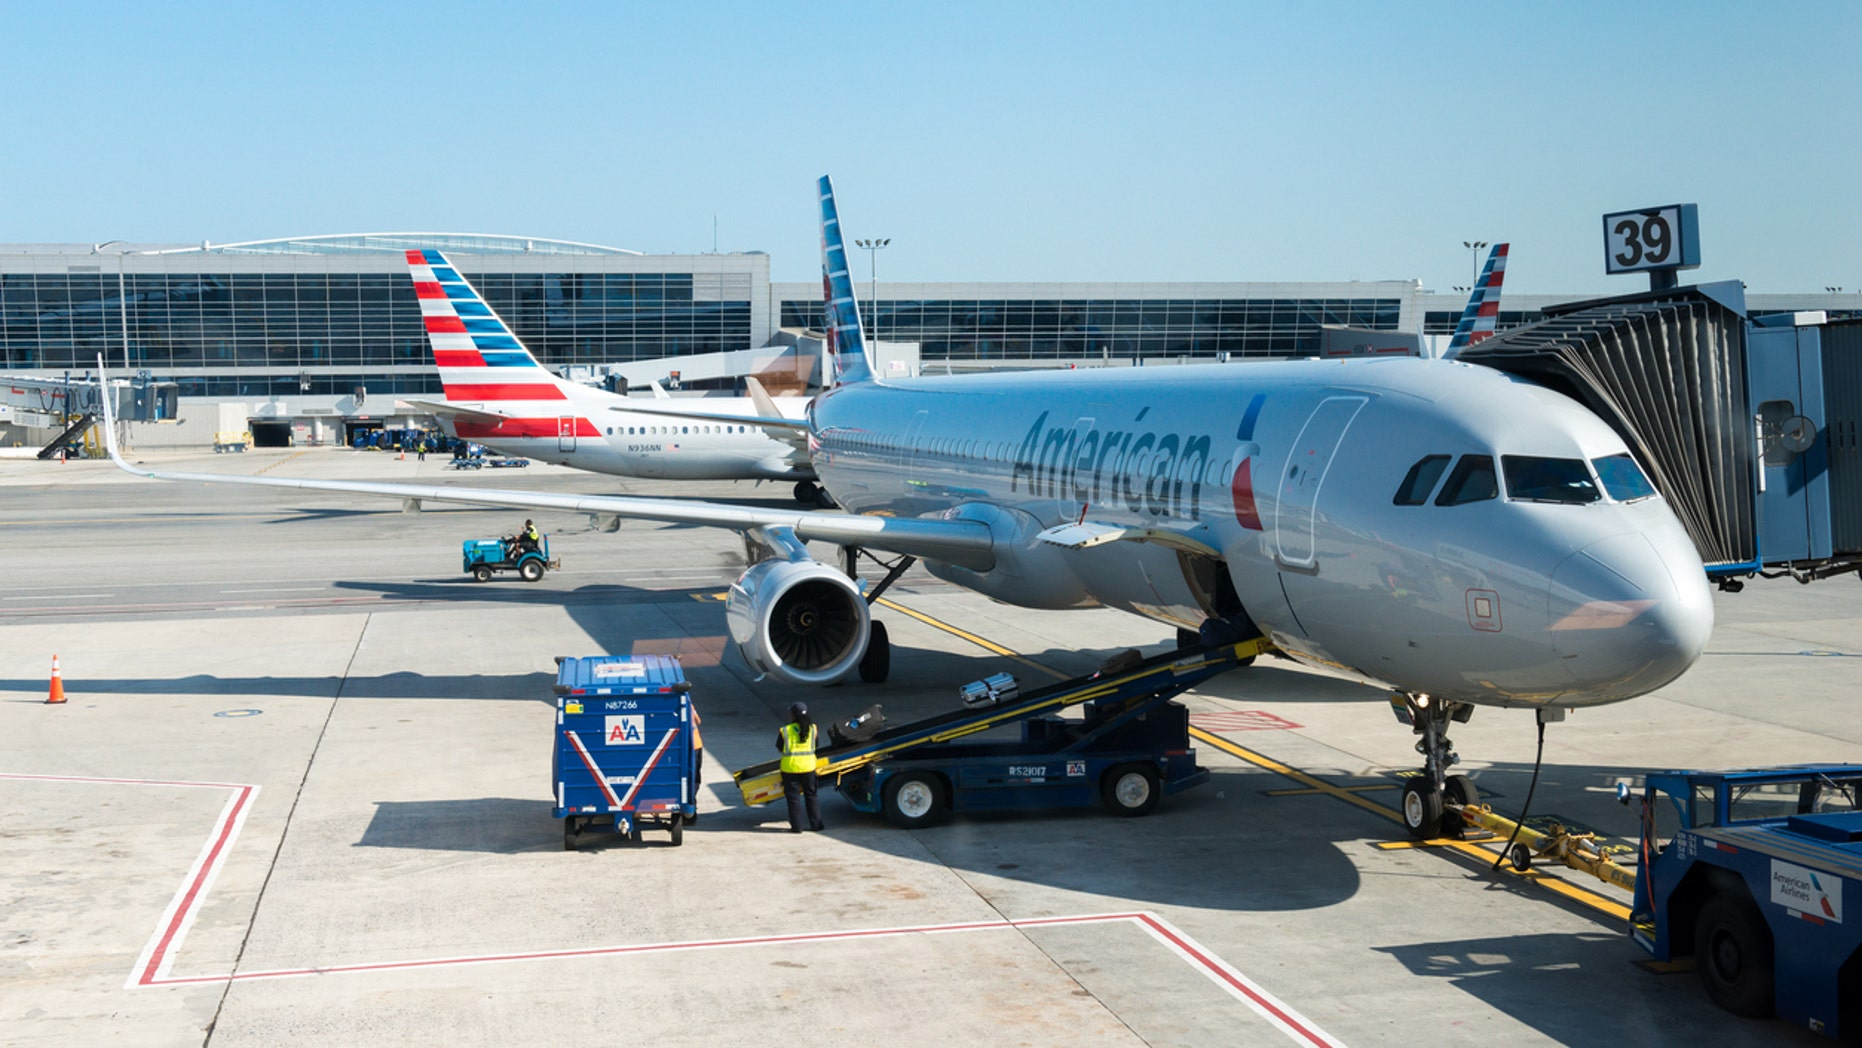 Six American Airlines crew members were transported to a local hospital after requesting medical evaluations, the airline said.